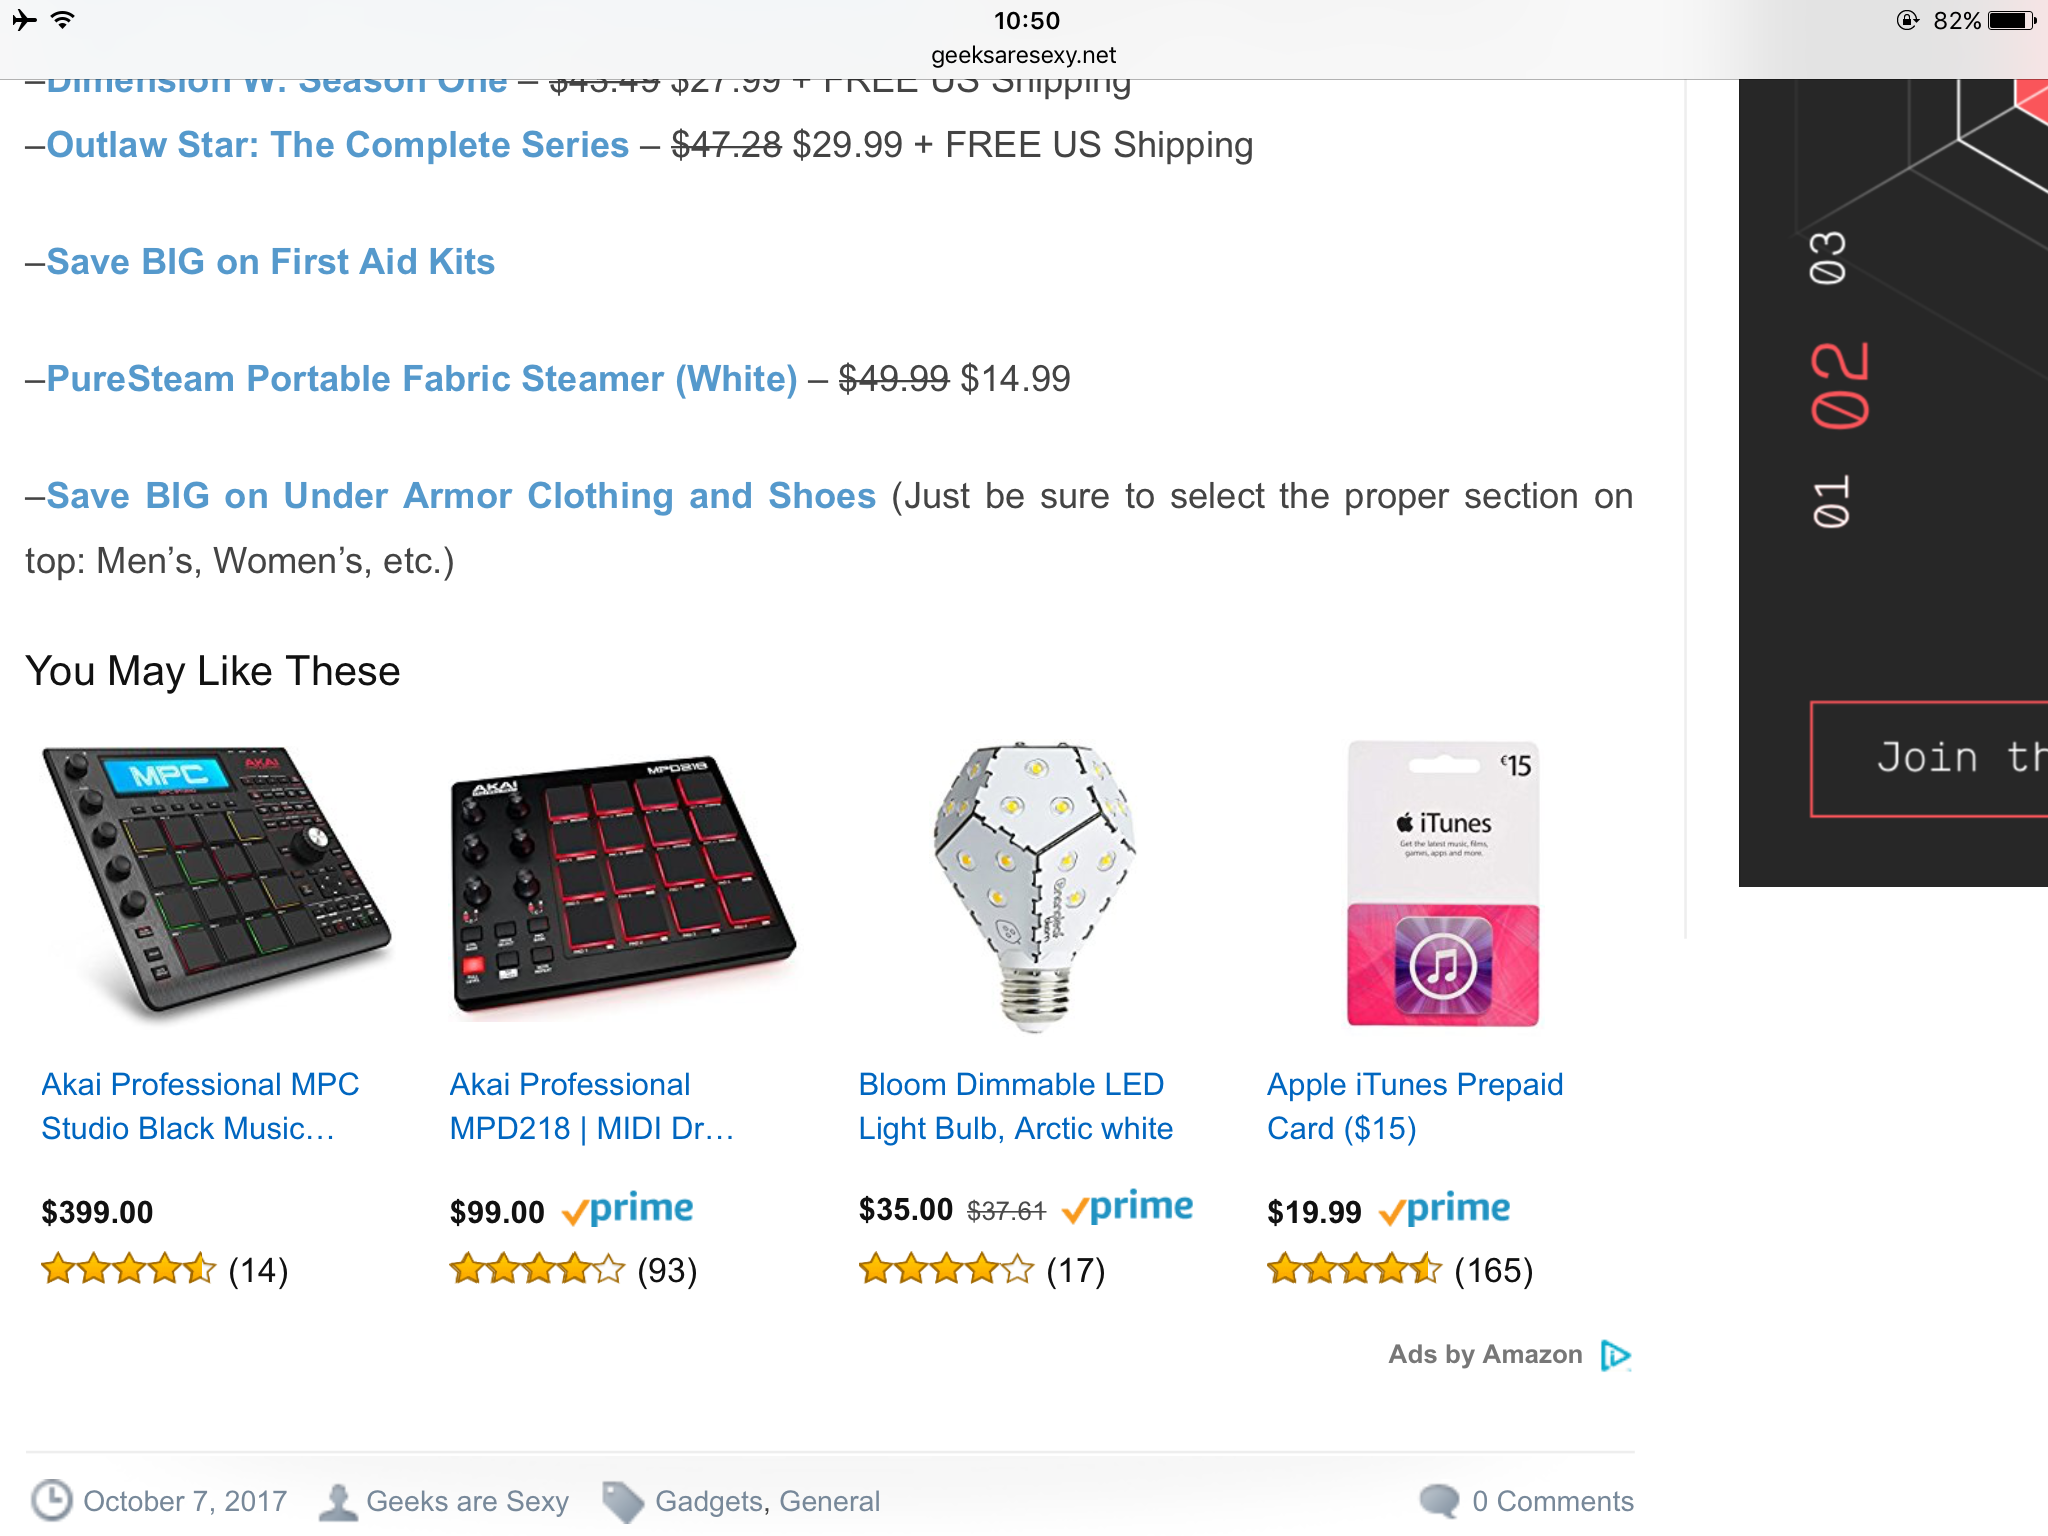 Post Itunes Gift Card Discounts And Promos Here Page 10 Us 50 Biancaneve Said Amazon Has A New Promotion